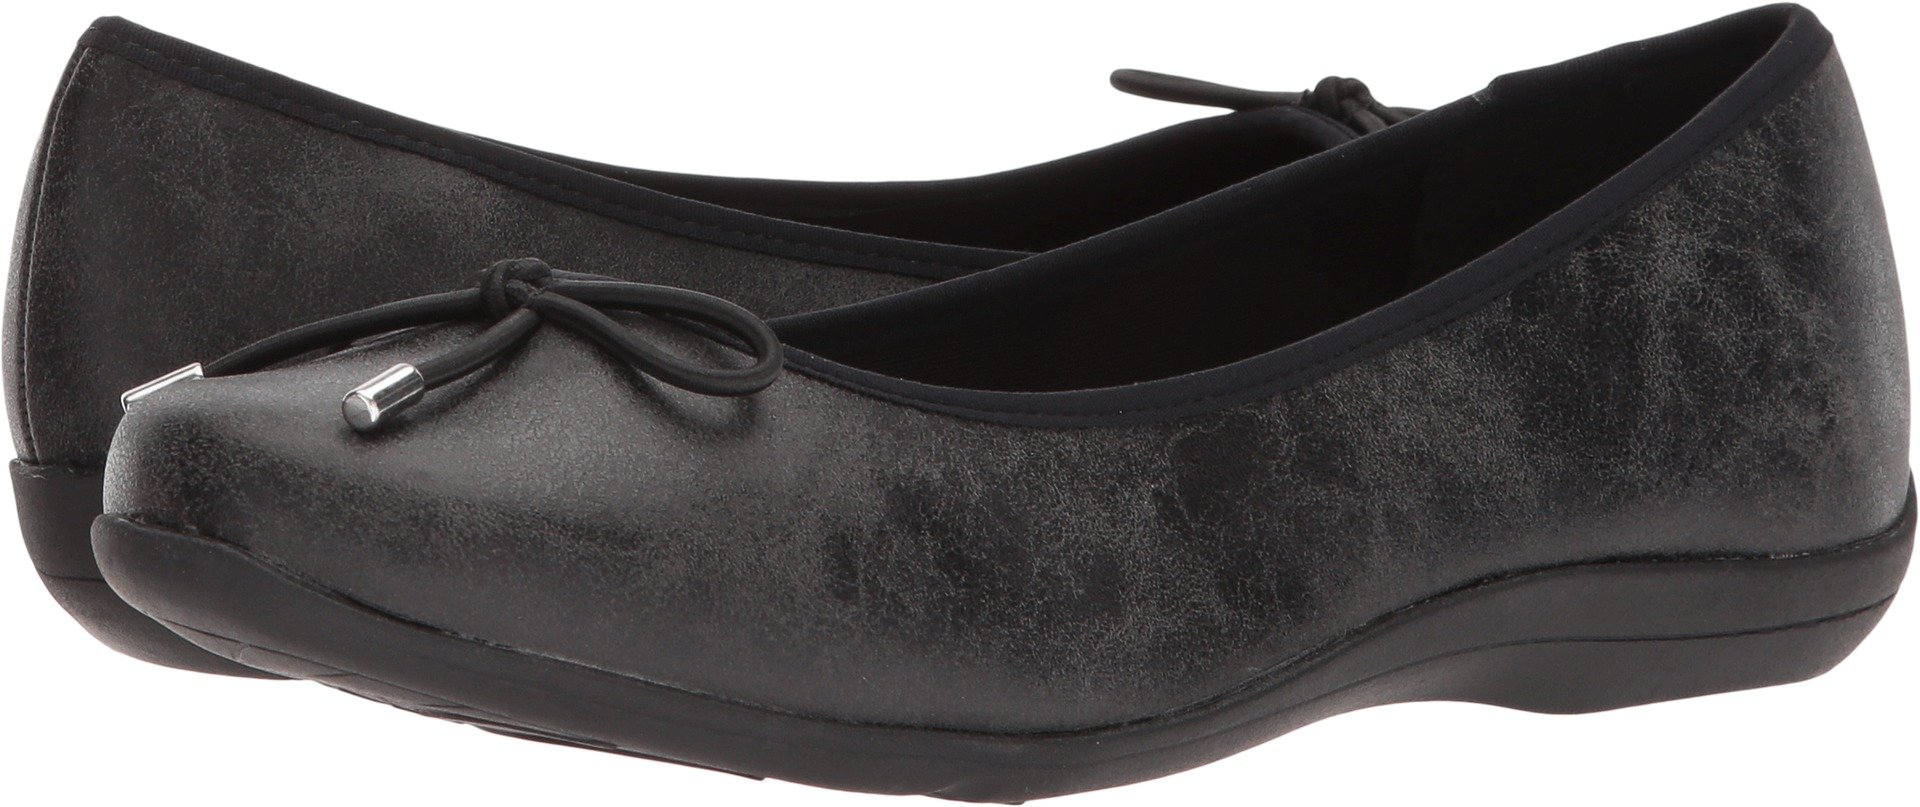 Soft Style by Hush Puppies Women's Heartbreaker Loafer, Black Eclipse, 08.0 M US